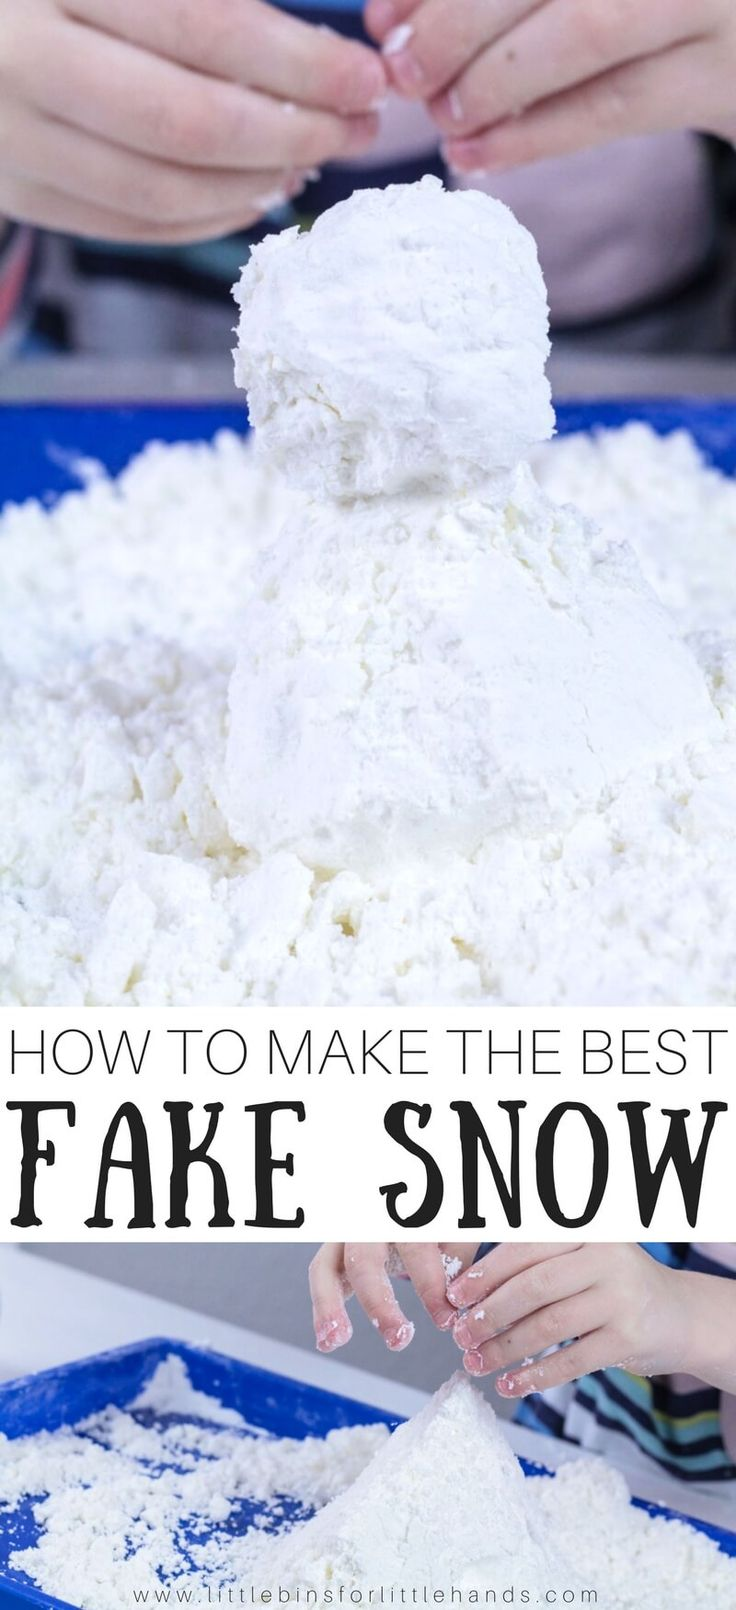 Make fake snow! Too much snow or not enough snow? It doesn't matter when you know how to make fake snow! Treat the kids to an indoor snowman building session or fun winter sensory play with this super easy to make snow recipe! If you haven't tried our fake snow slime yet, put it one list. There's all kids of sensory play to try with the kids this season.